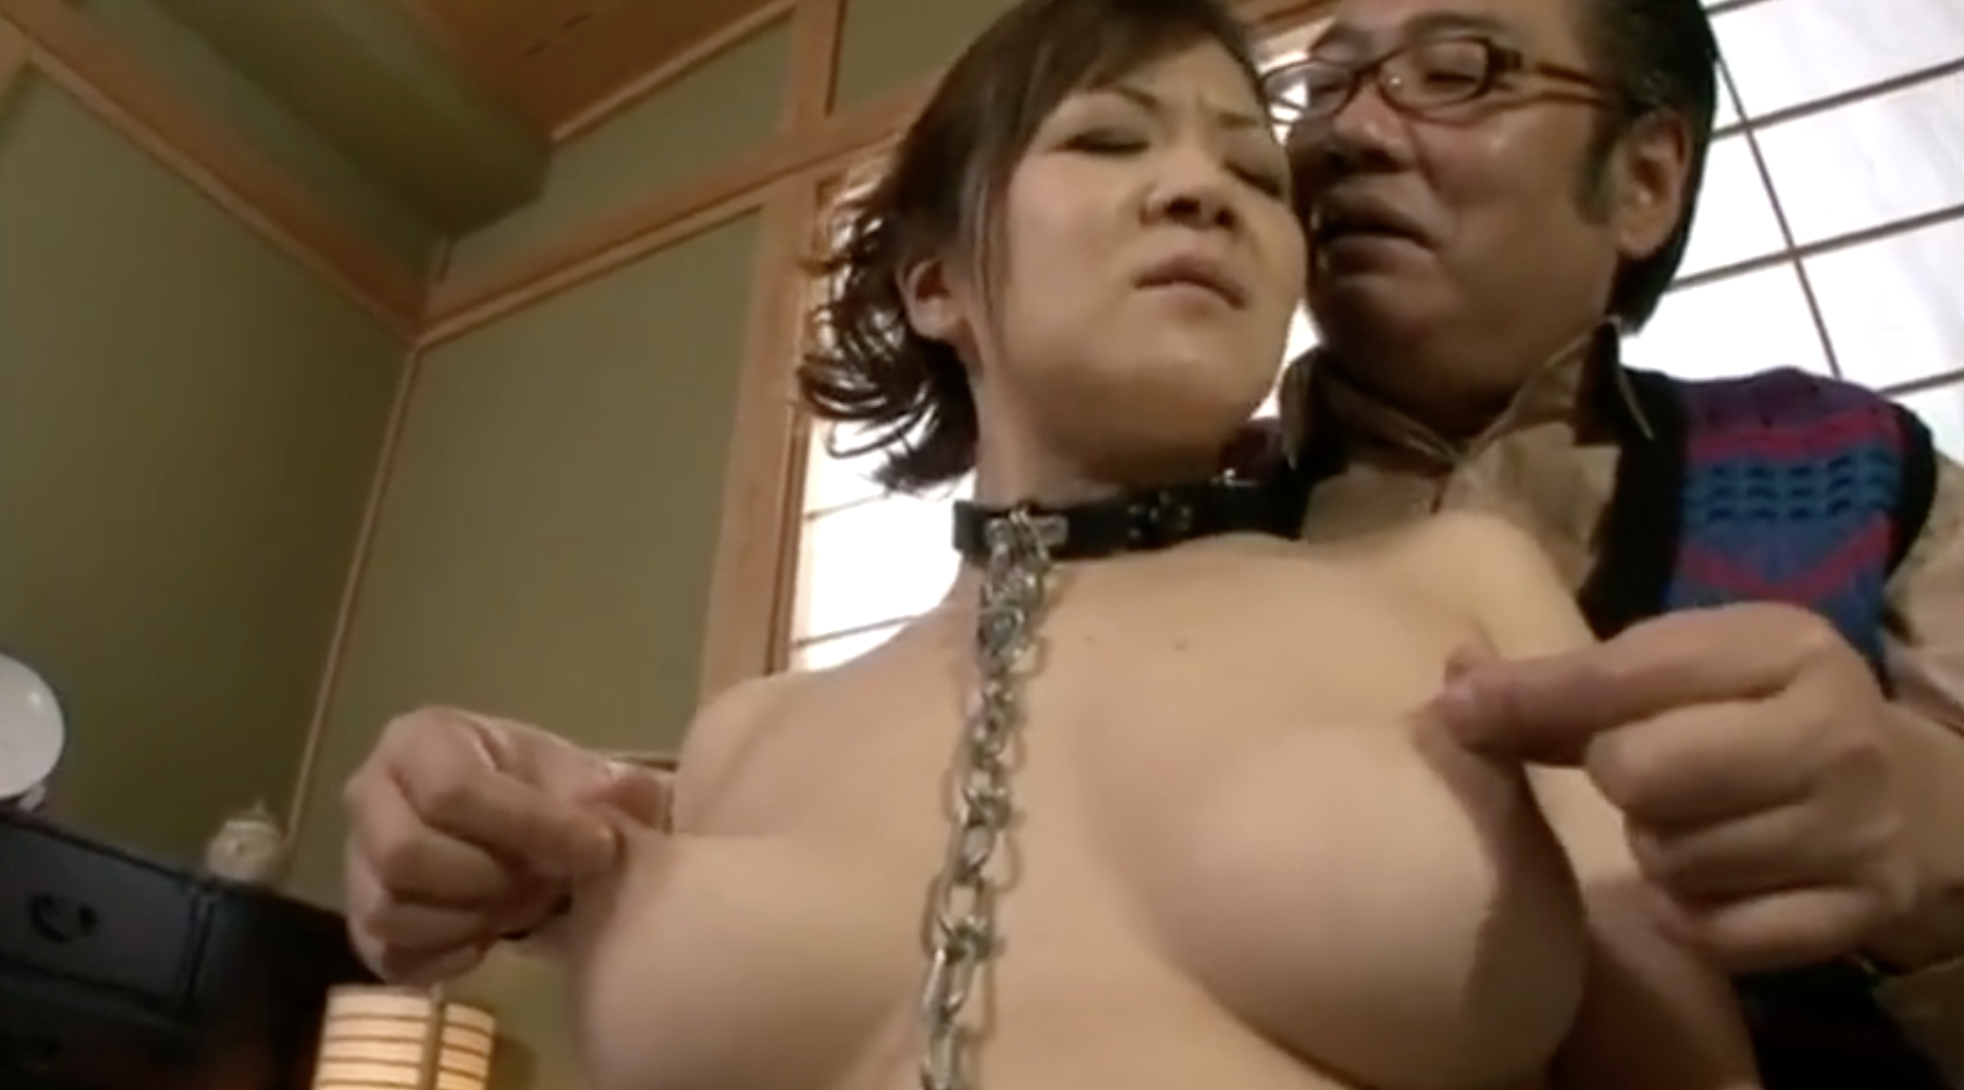 https://jp.pornhub.com/view_video.php?viewkey=ph5ab51956336d0